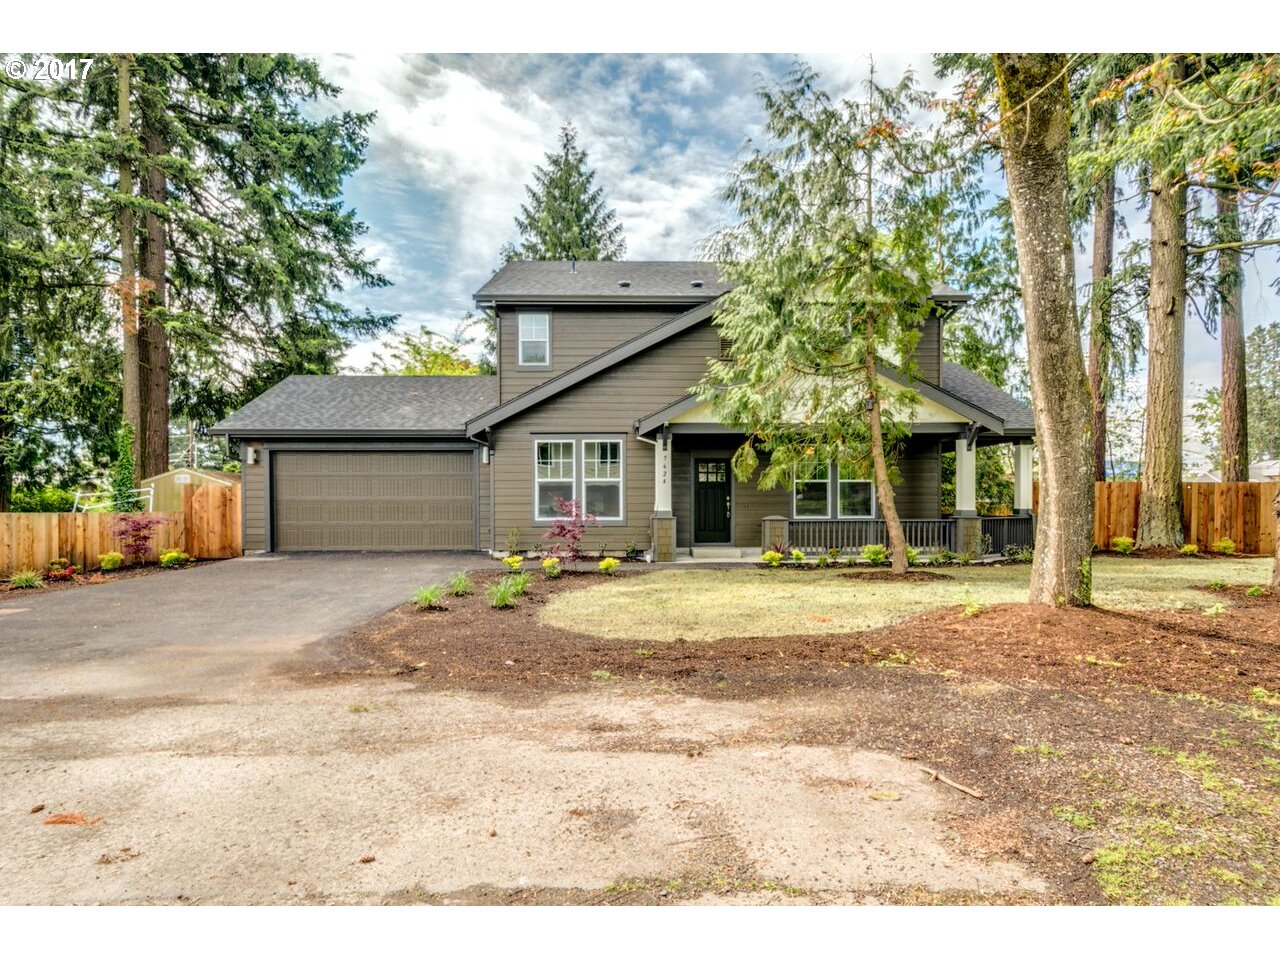 7624 SE Oris, Milwaukie, OR 97222